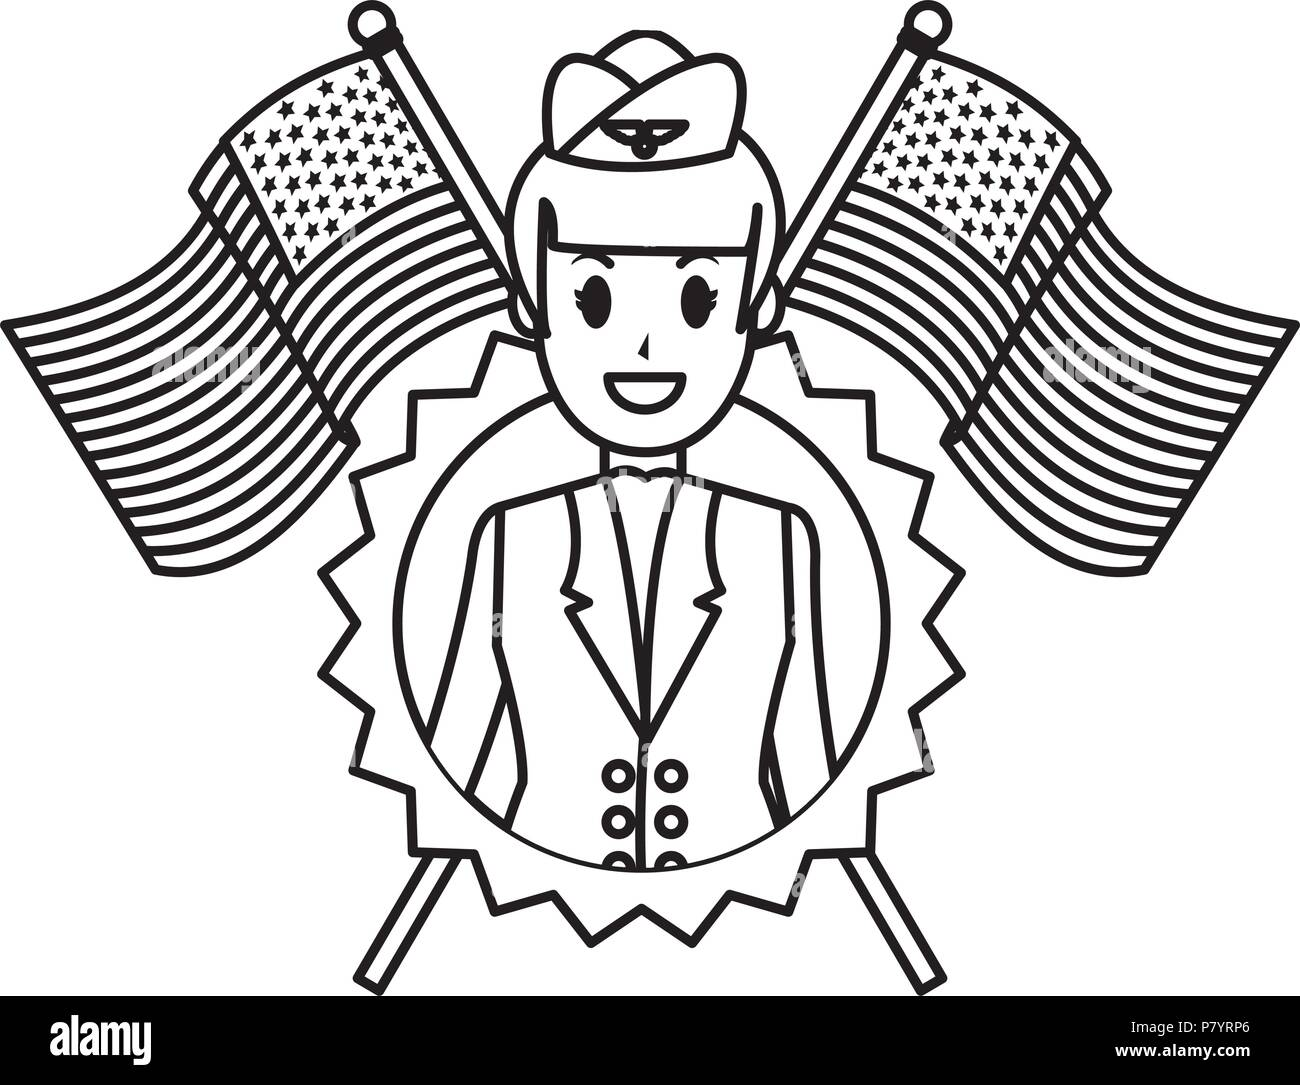 all national flags black and white stock photos images alamy Old French Flag in 1600s line stewardess with usa flags and nation emblem stock image